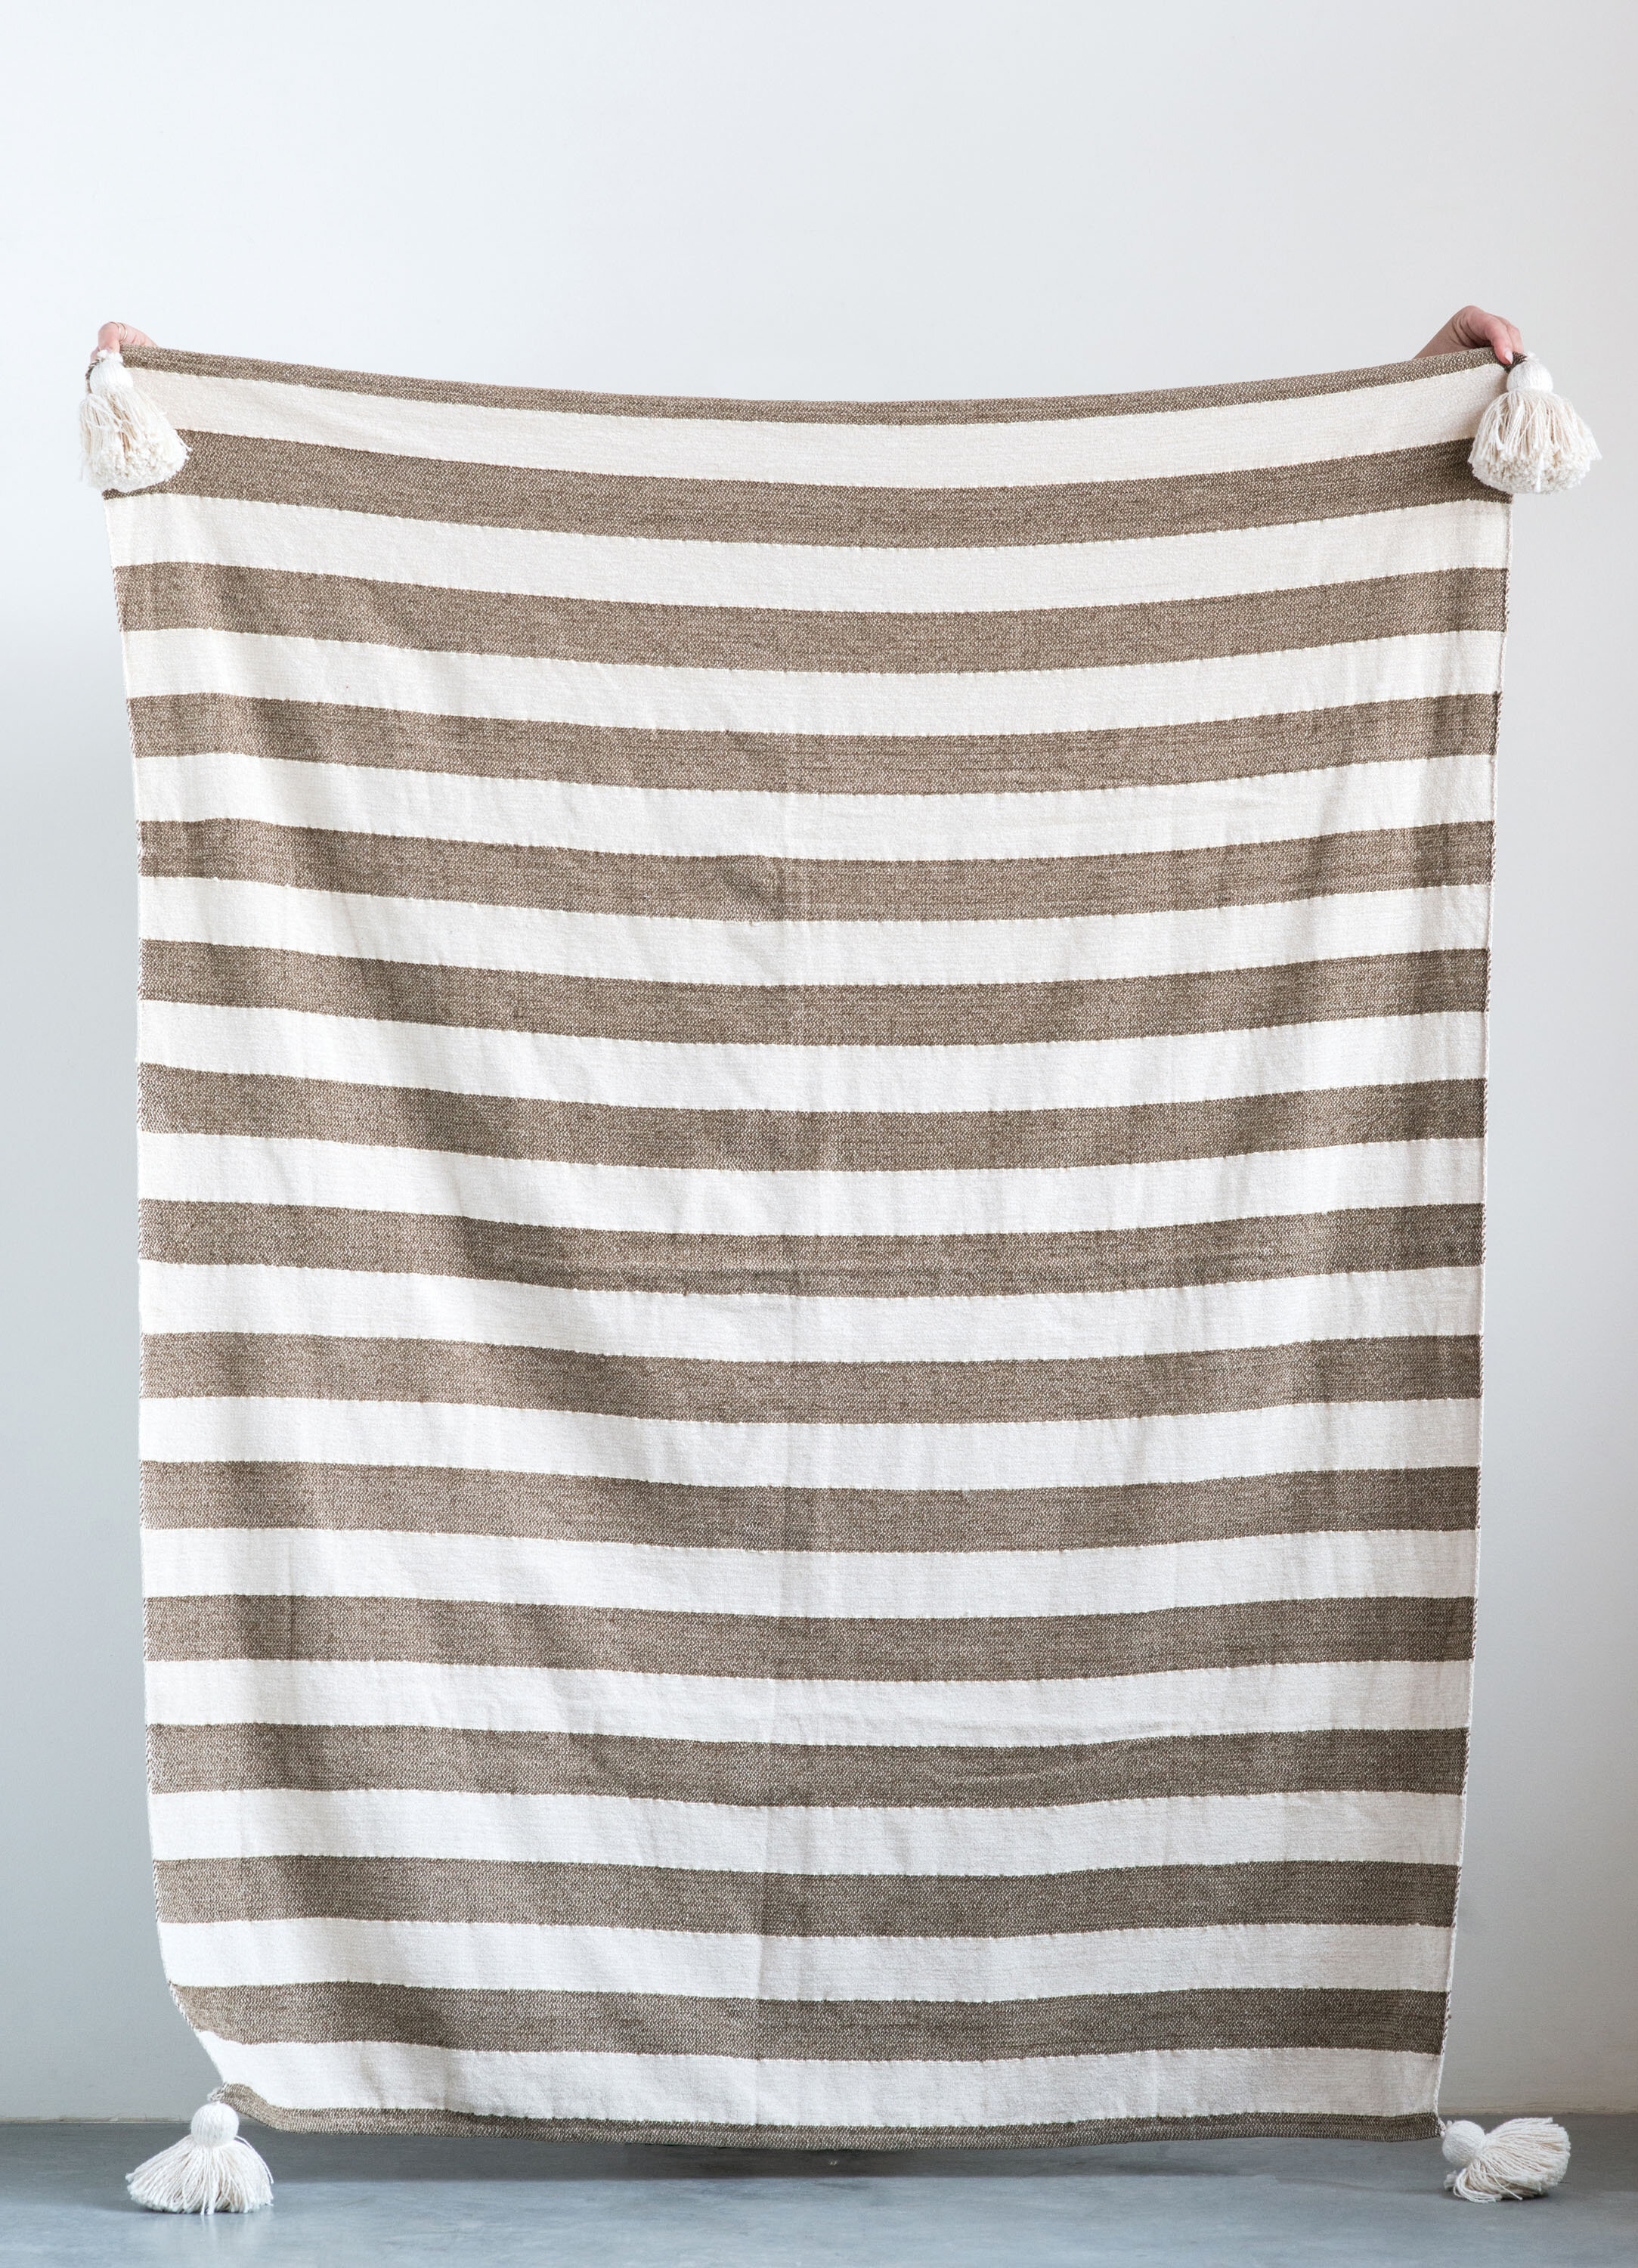 Kifer Metallic Striped Woven With Tels Cotton Blanket